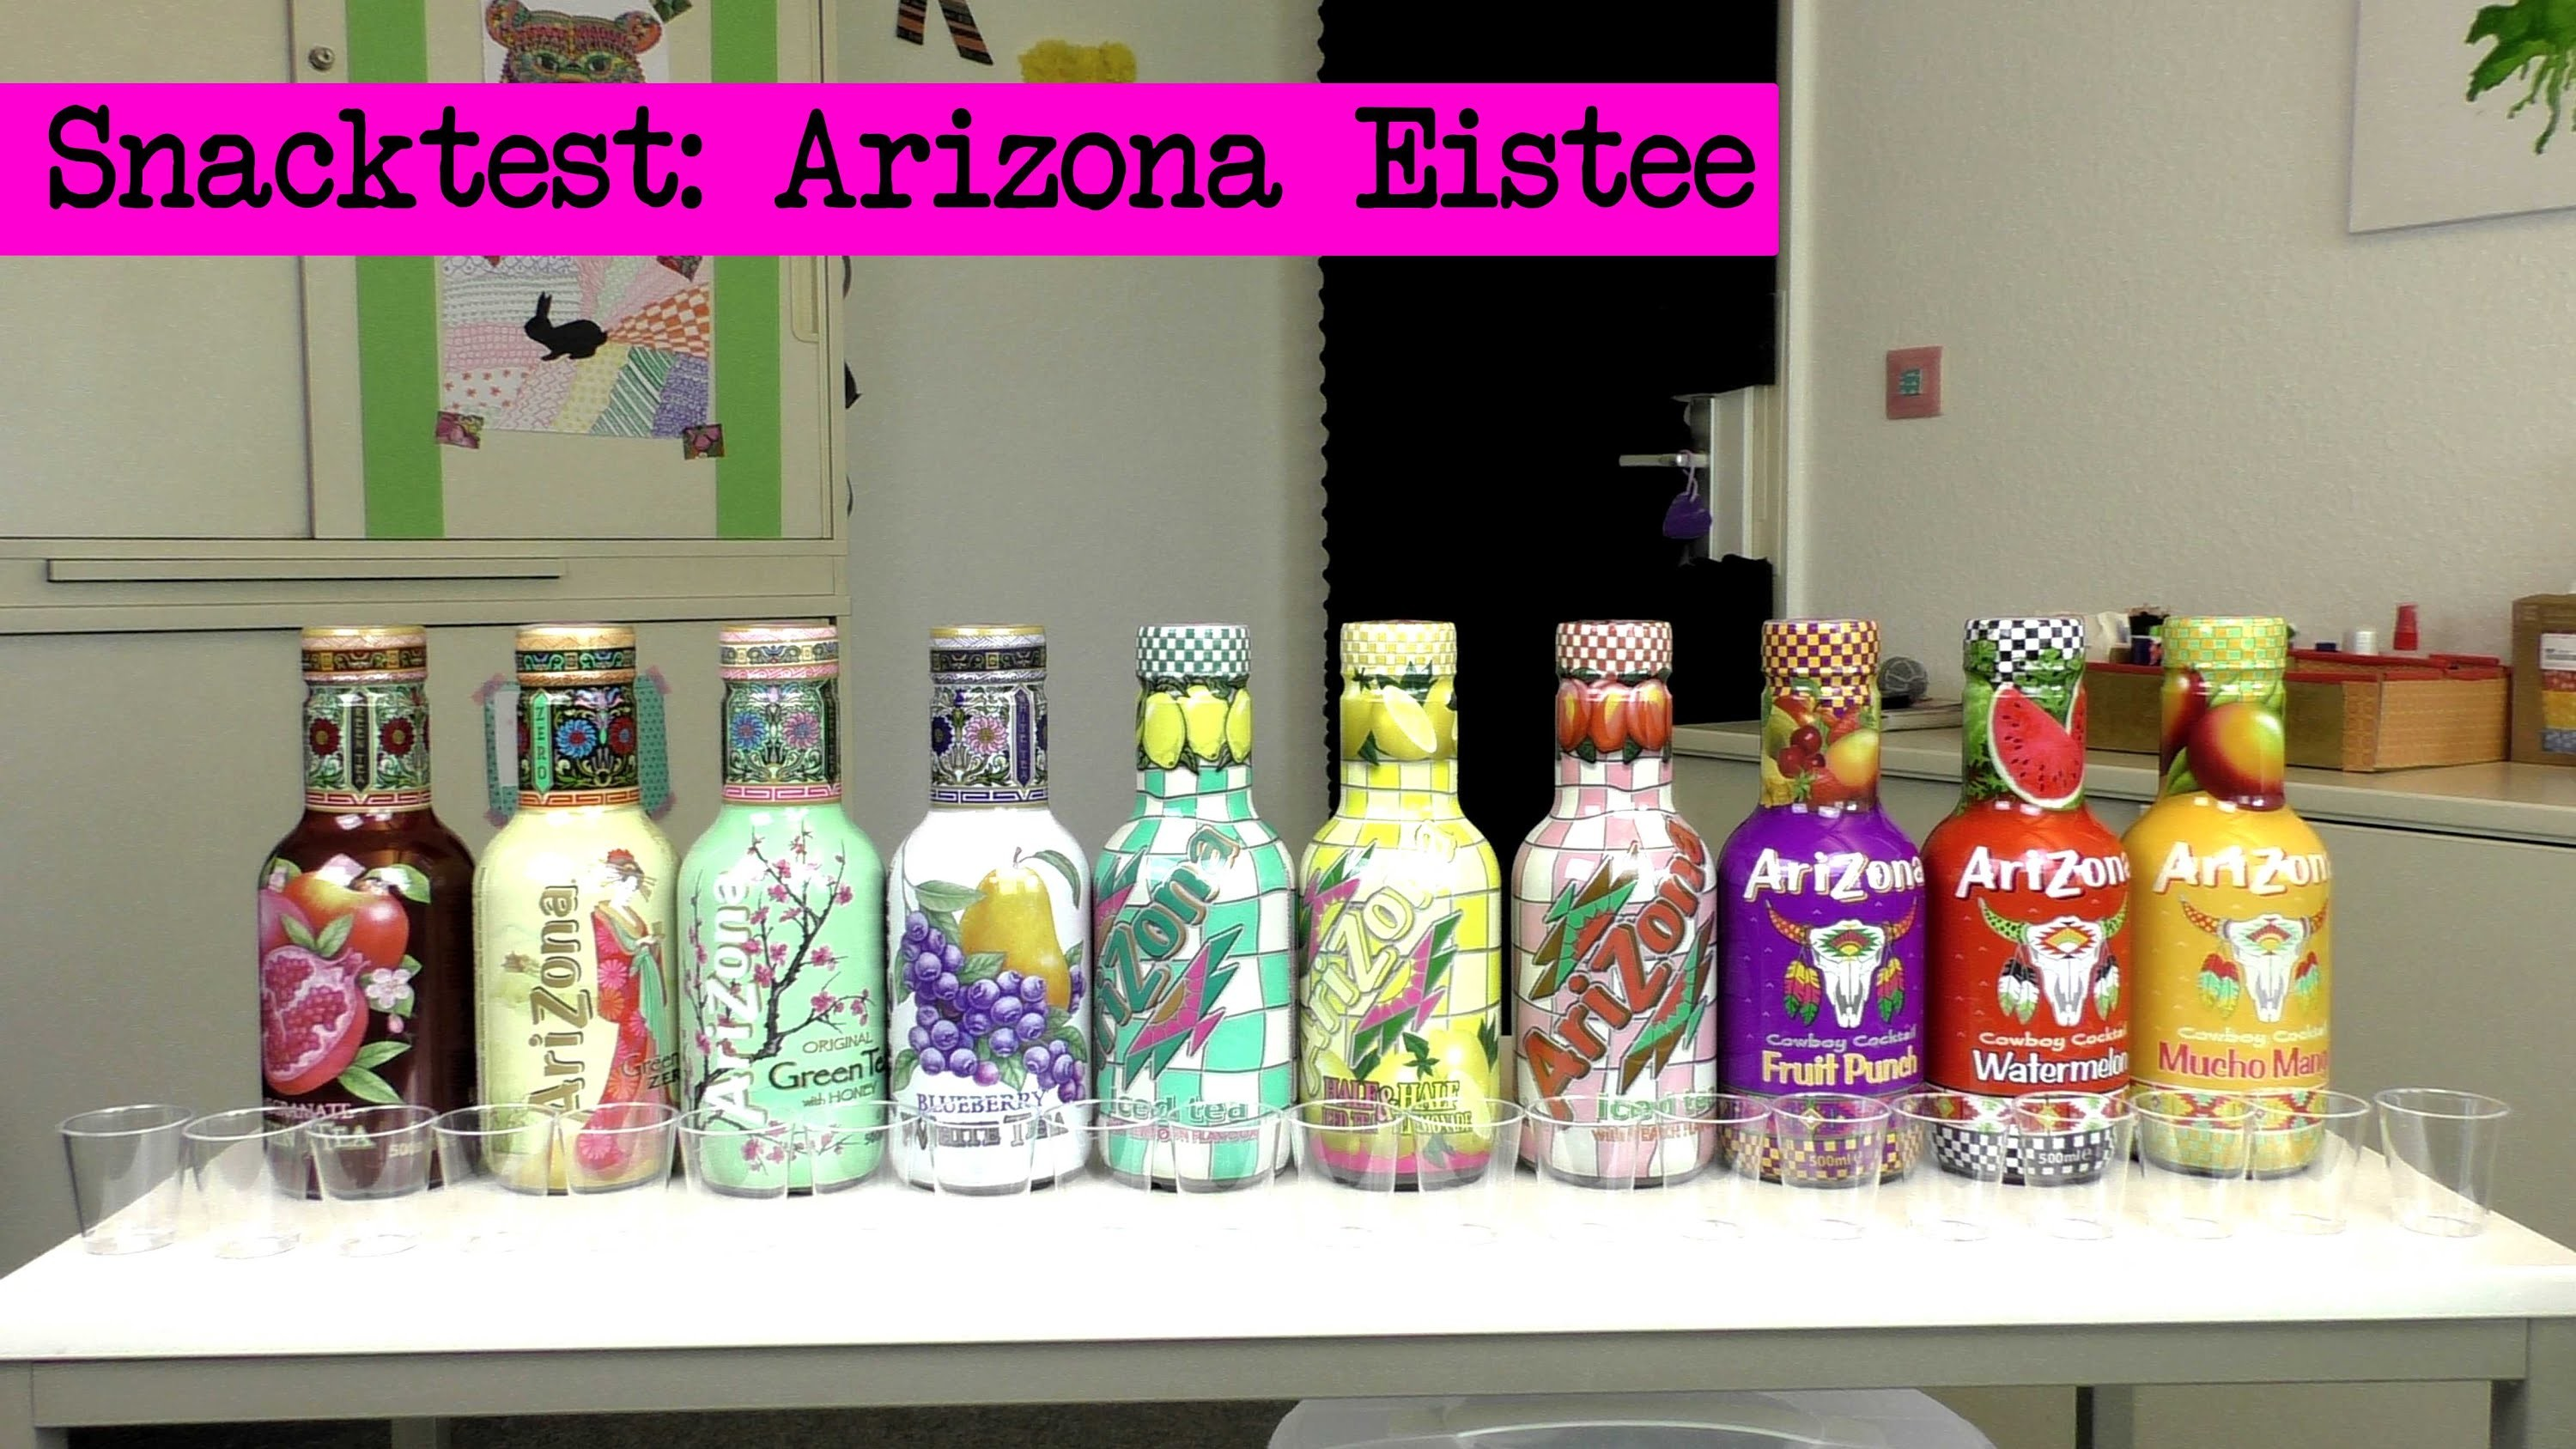 DIY Inspiration Snacktest: Arizona Eistee - Arizona Iced Tea Review - Eva & Kathi testen alle Sorten